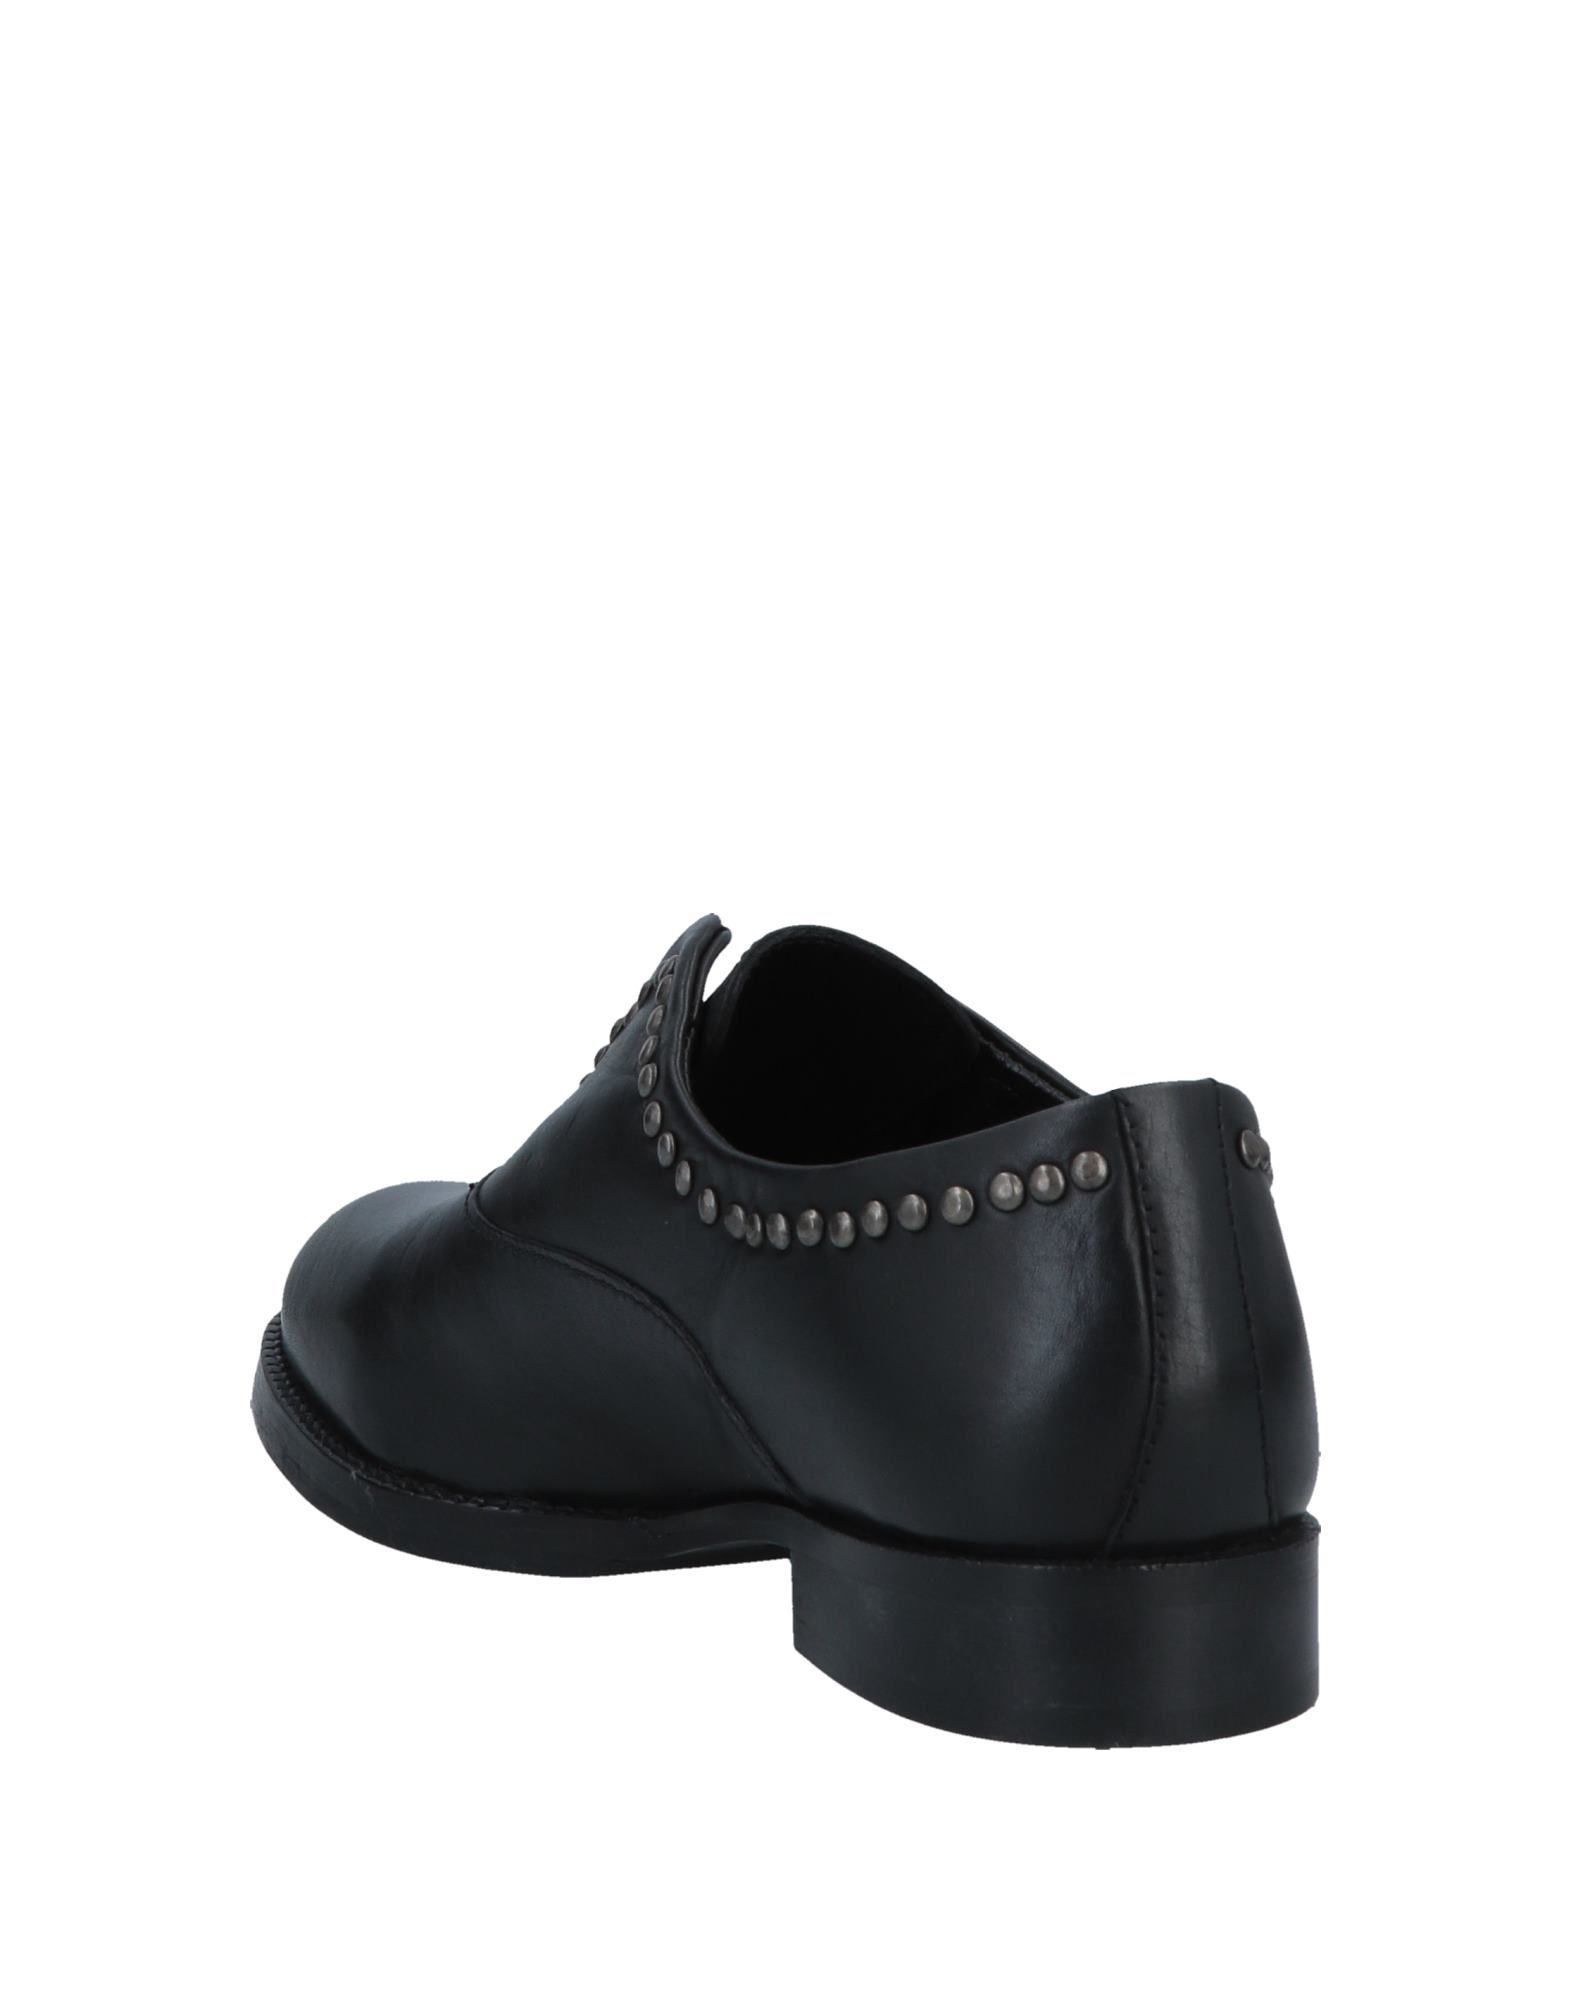 Cafenoir Black Leather Studded Flat Shoes